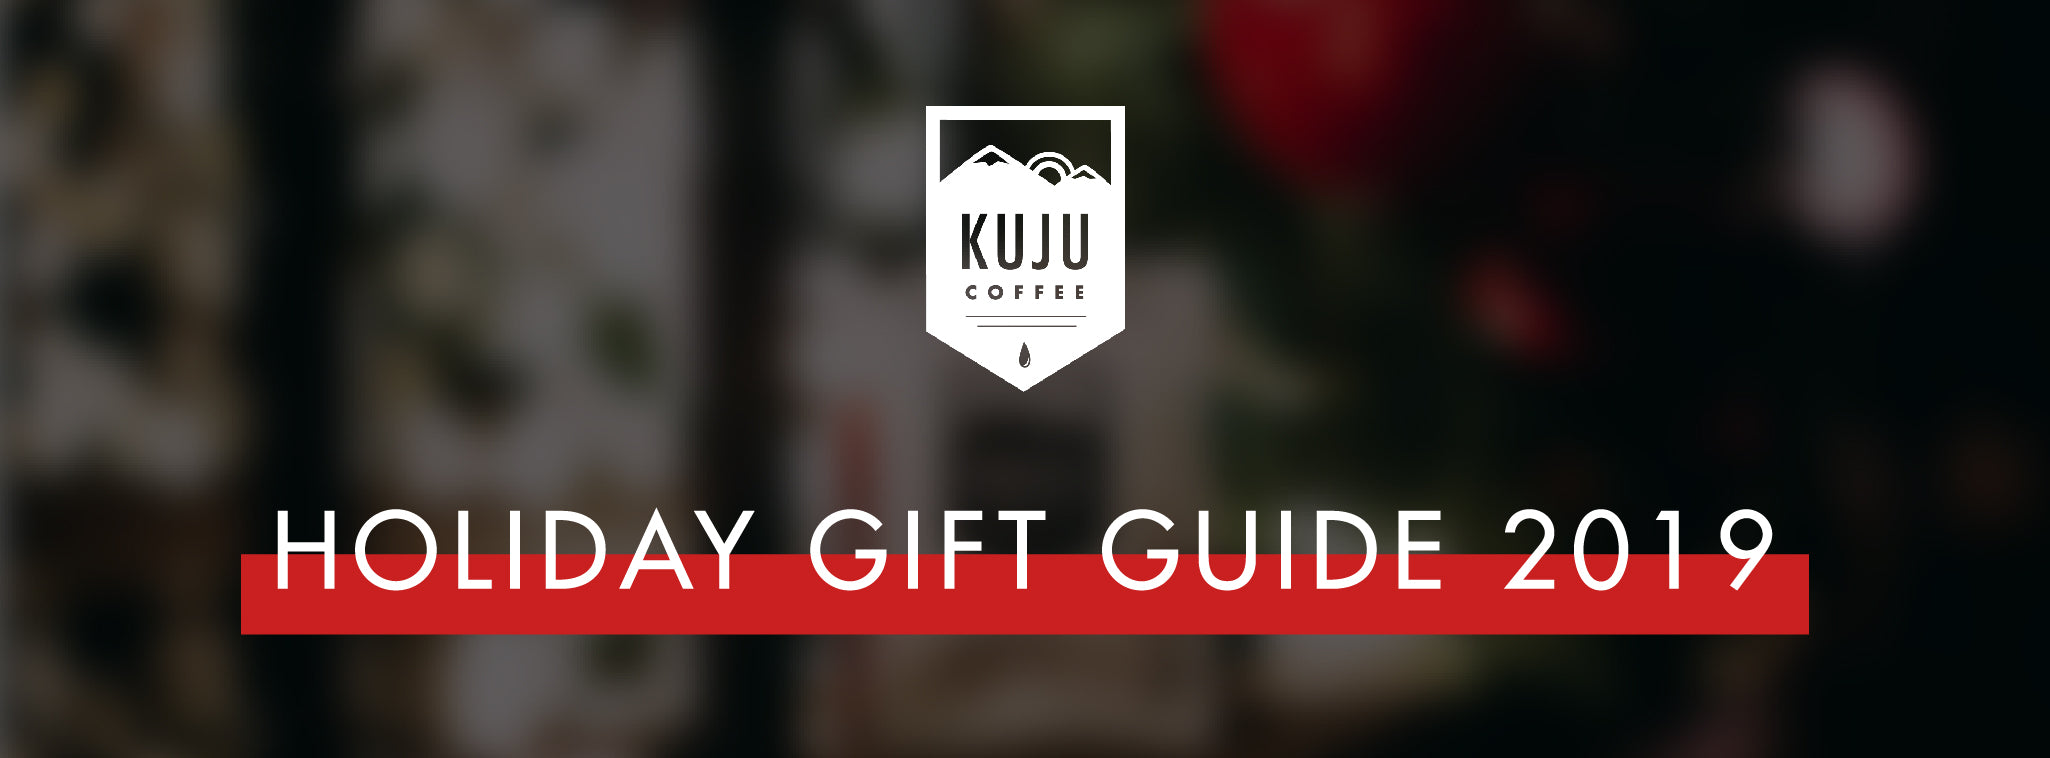 kuju coffee holiday gift guide 2019